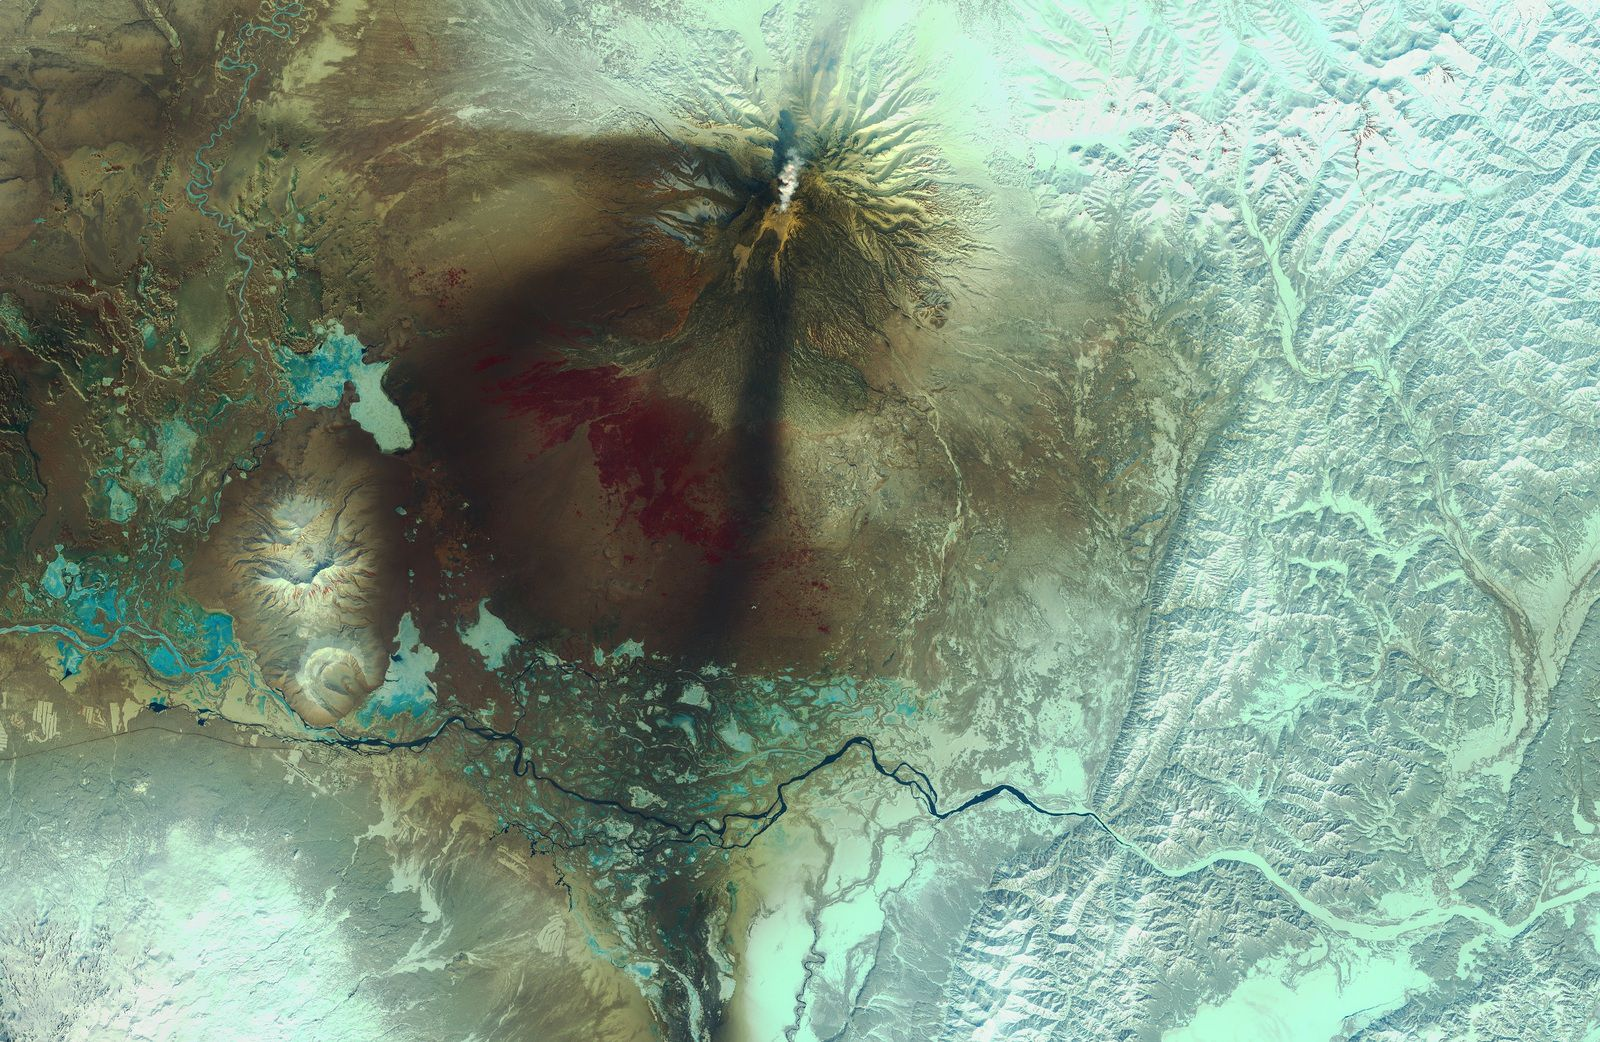 Kamtchatka - Volan Chiveloutch - Eruption - Satellite - Sentinel-2 - Copernicus - ESA - Volcano - Avril 2019